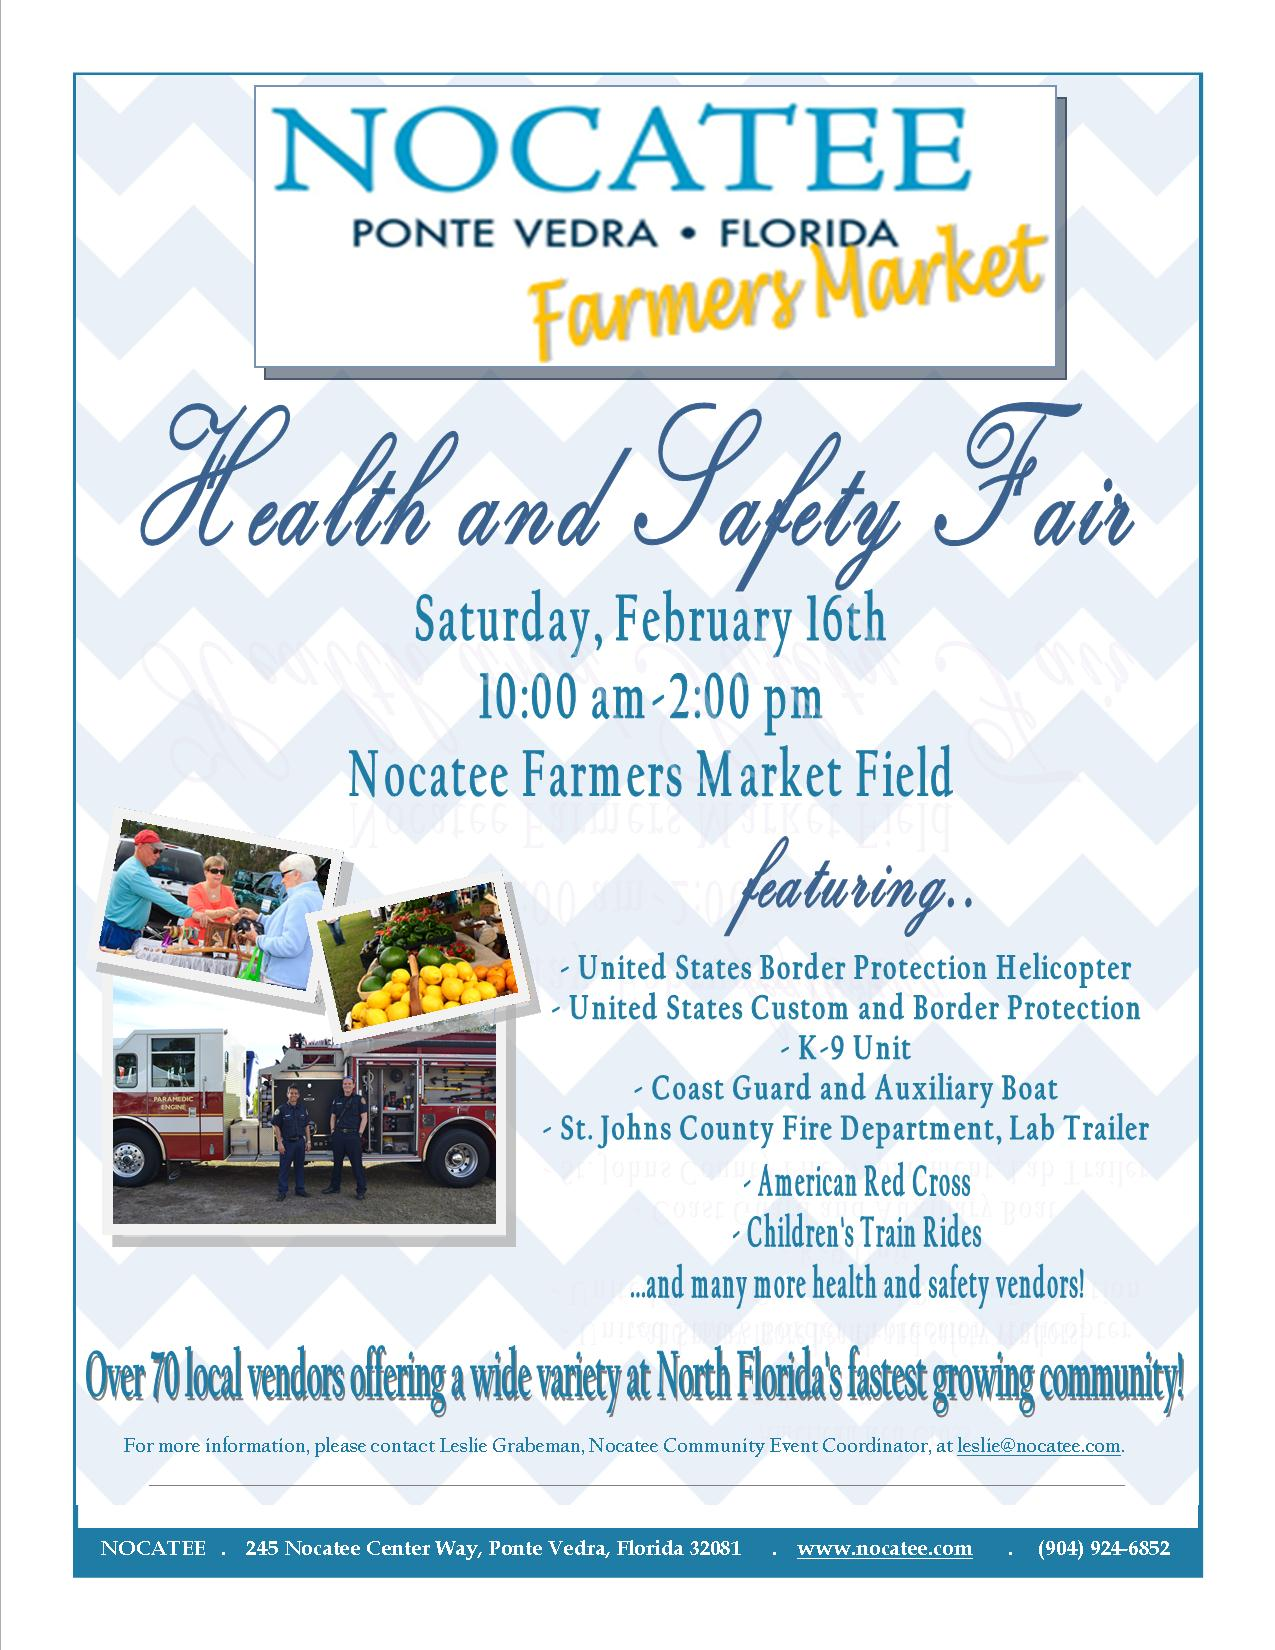 Nocatee Farmers Market event